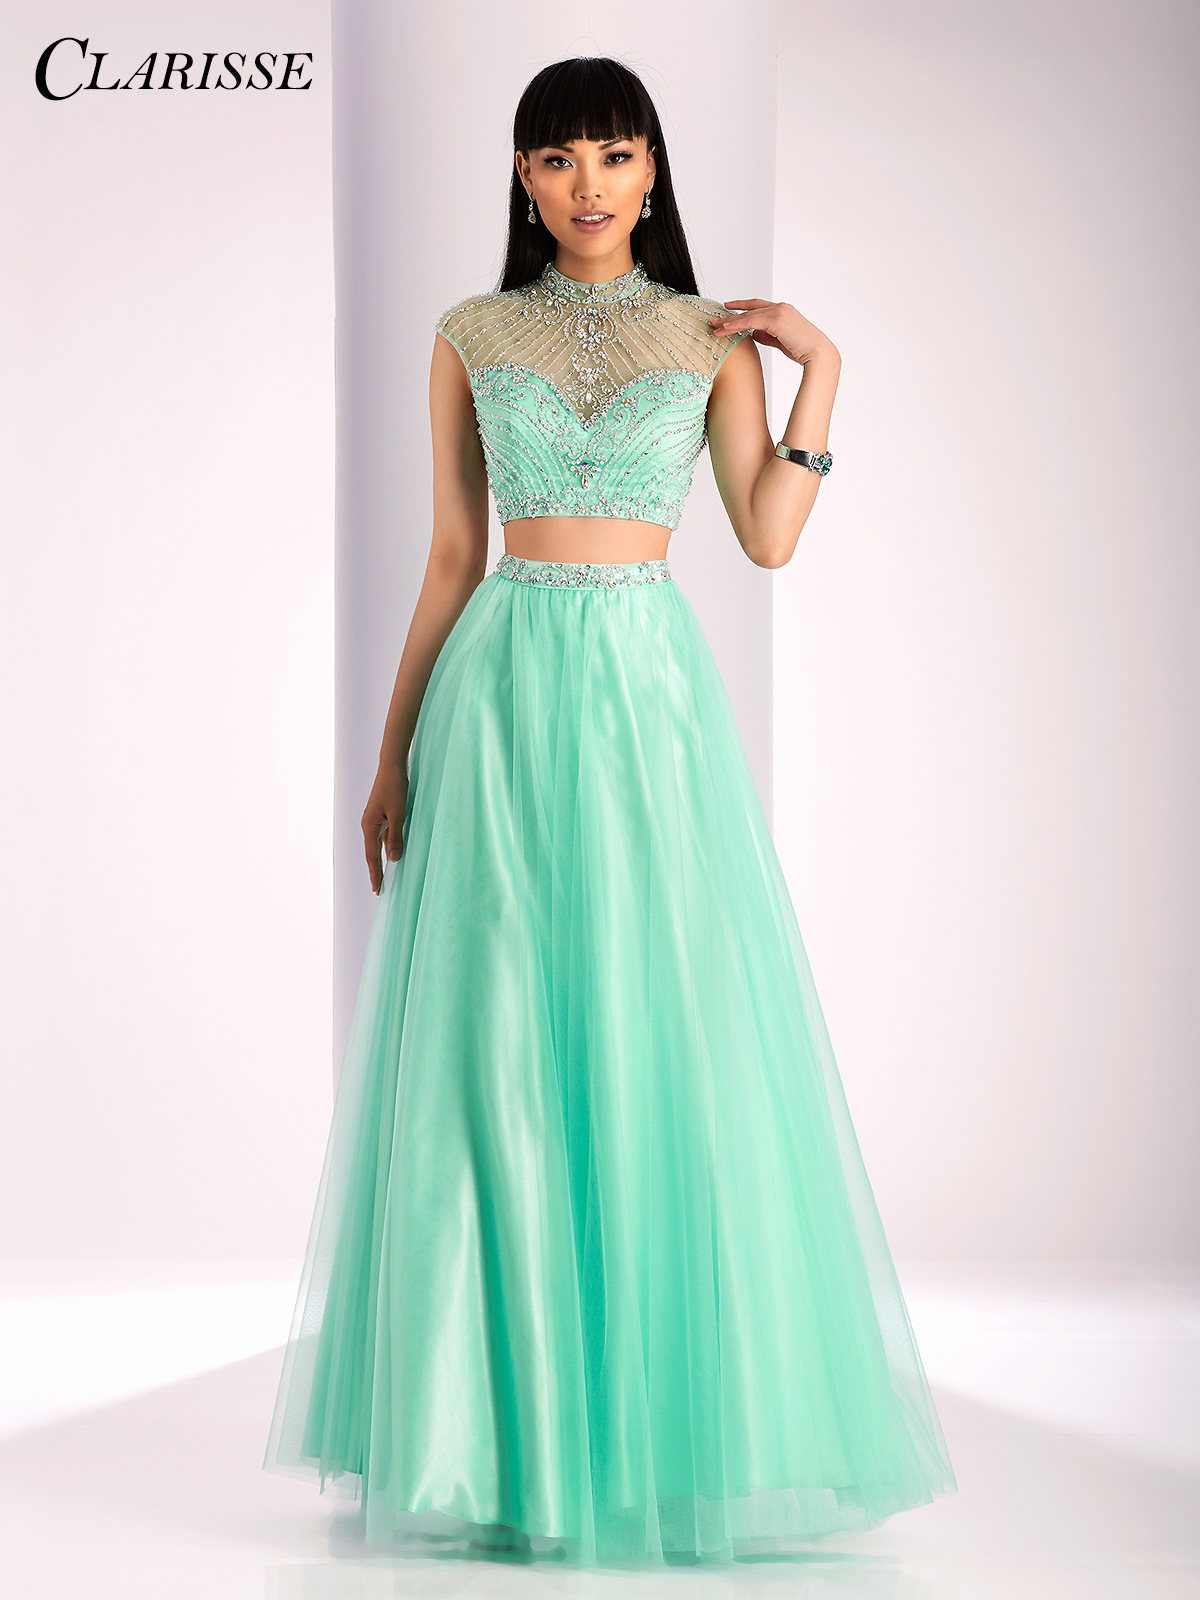 Clarisse Prom Dress 3017 | Promgirl.net